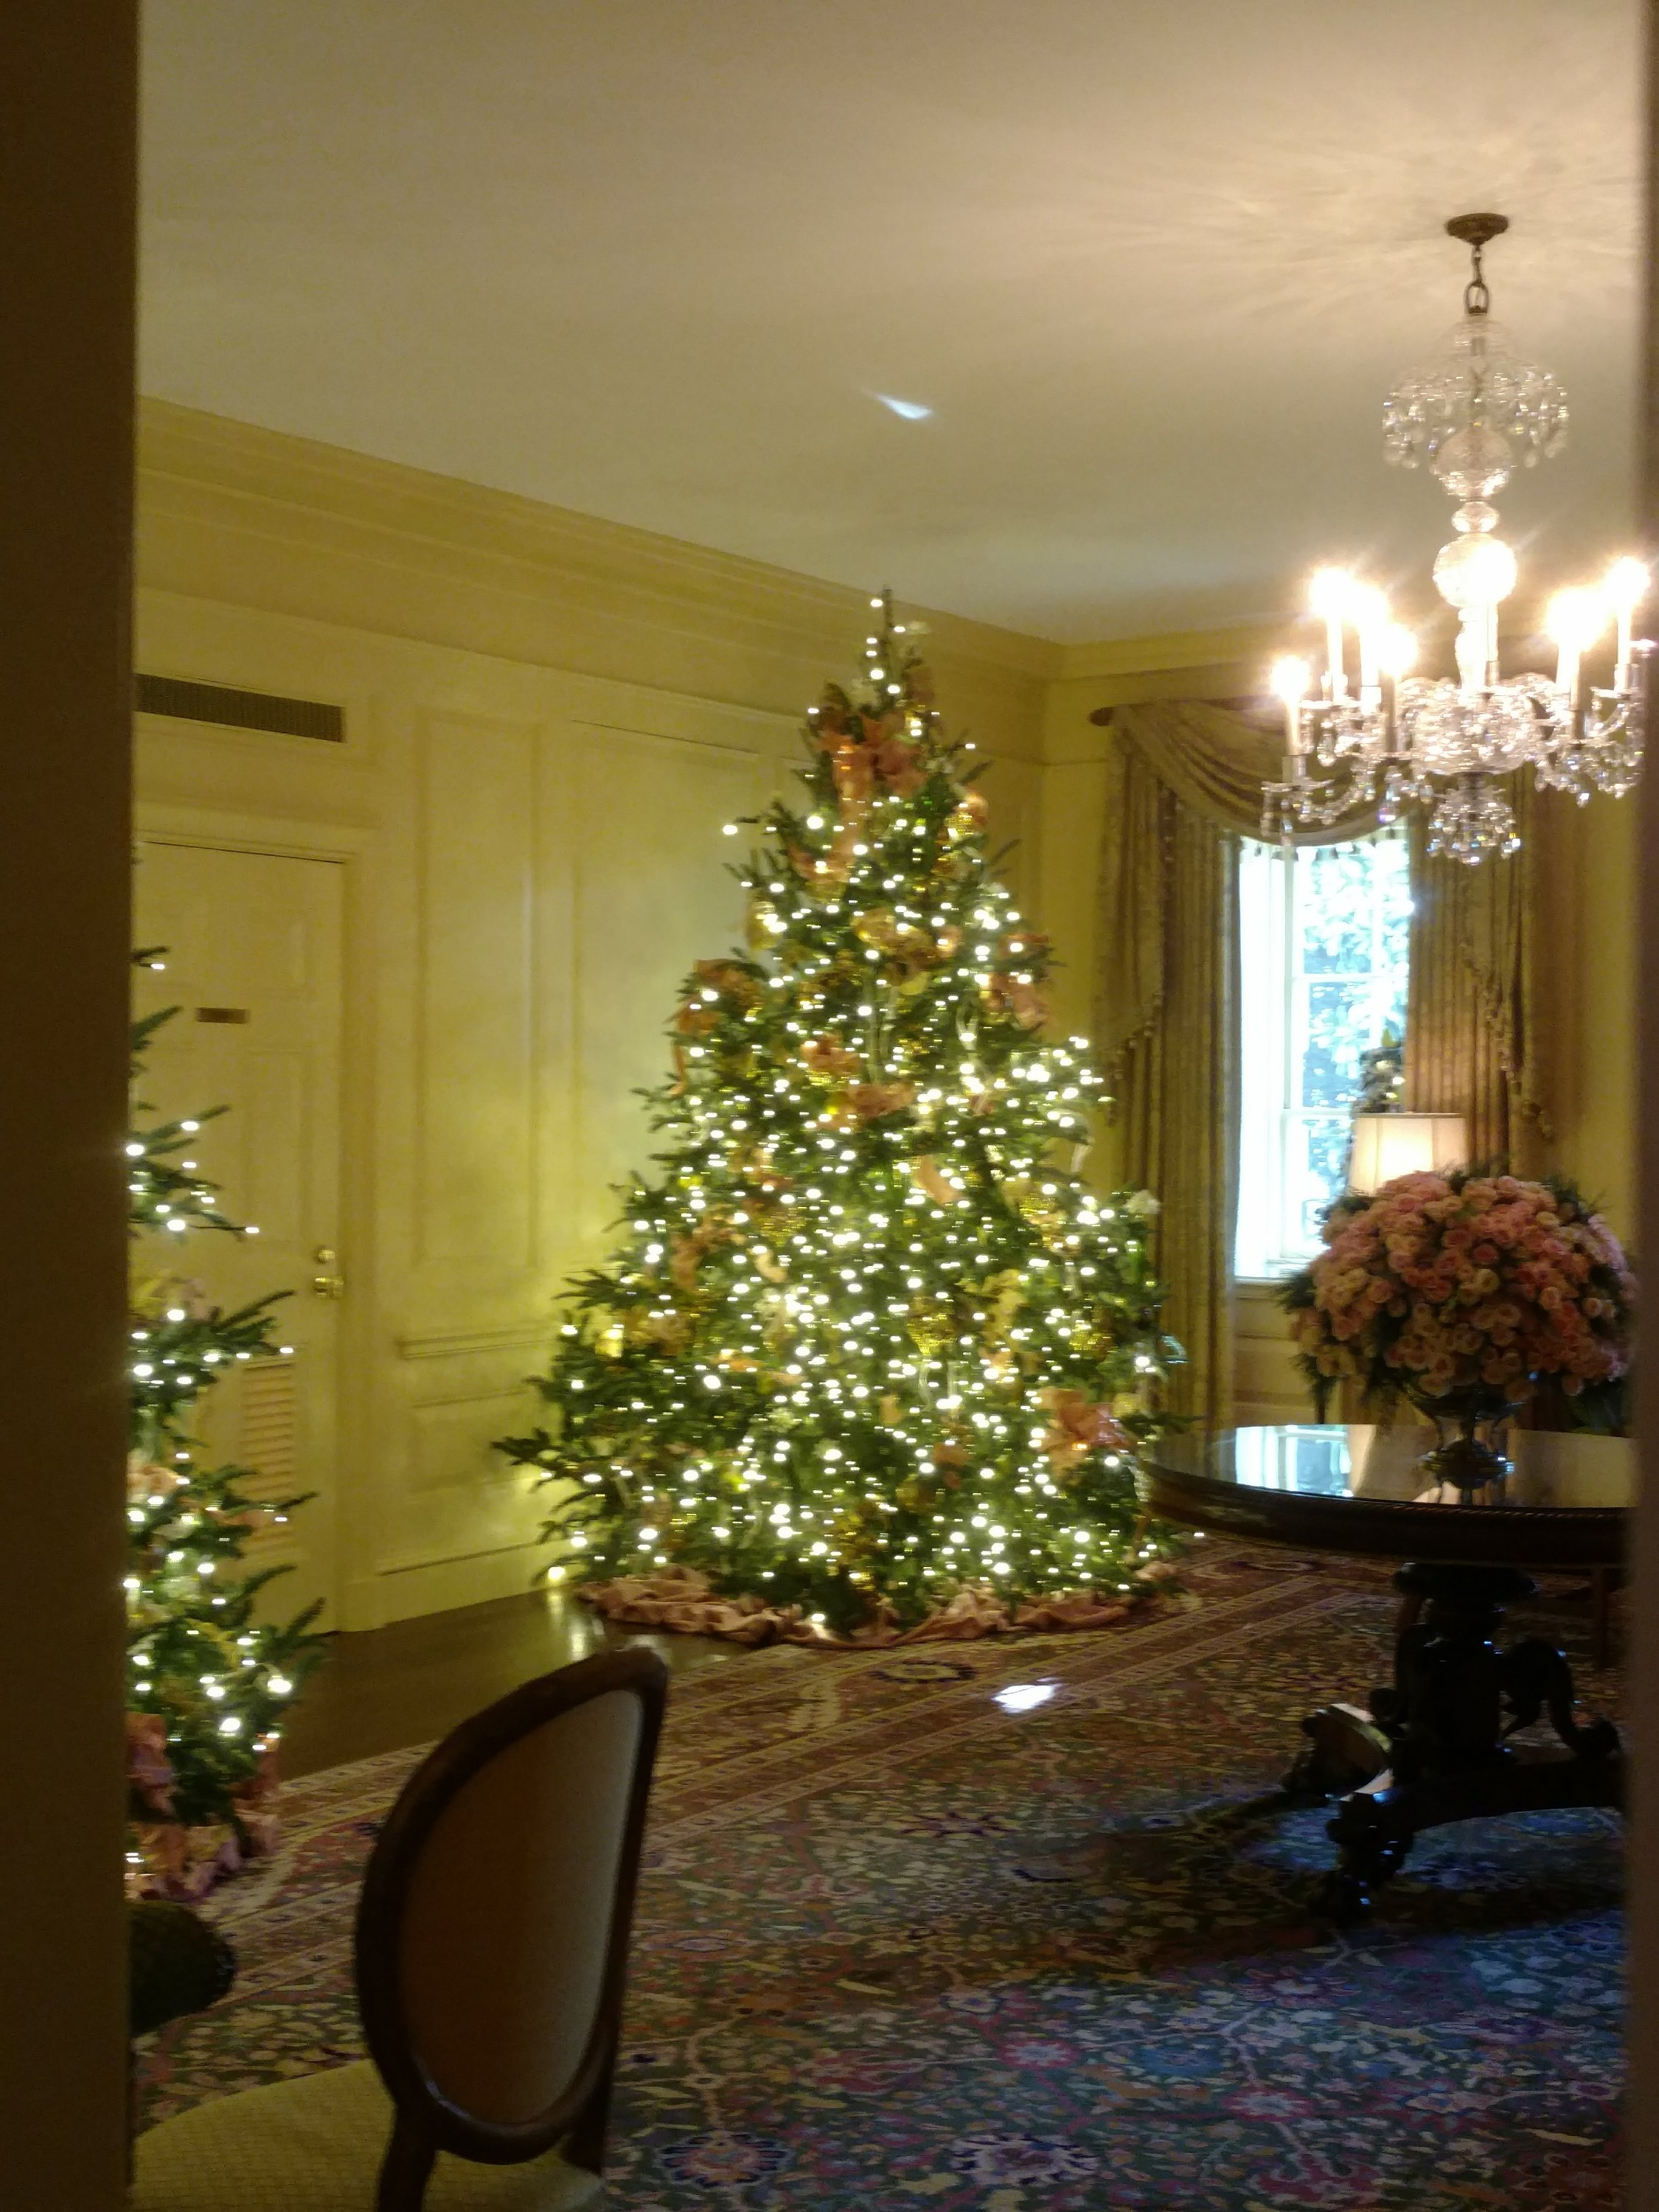 Festively decorations in a room at the White House